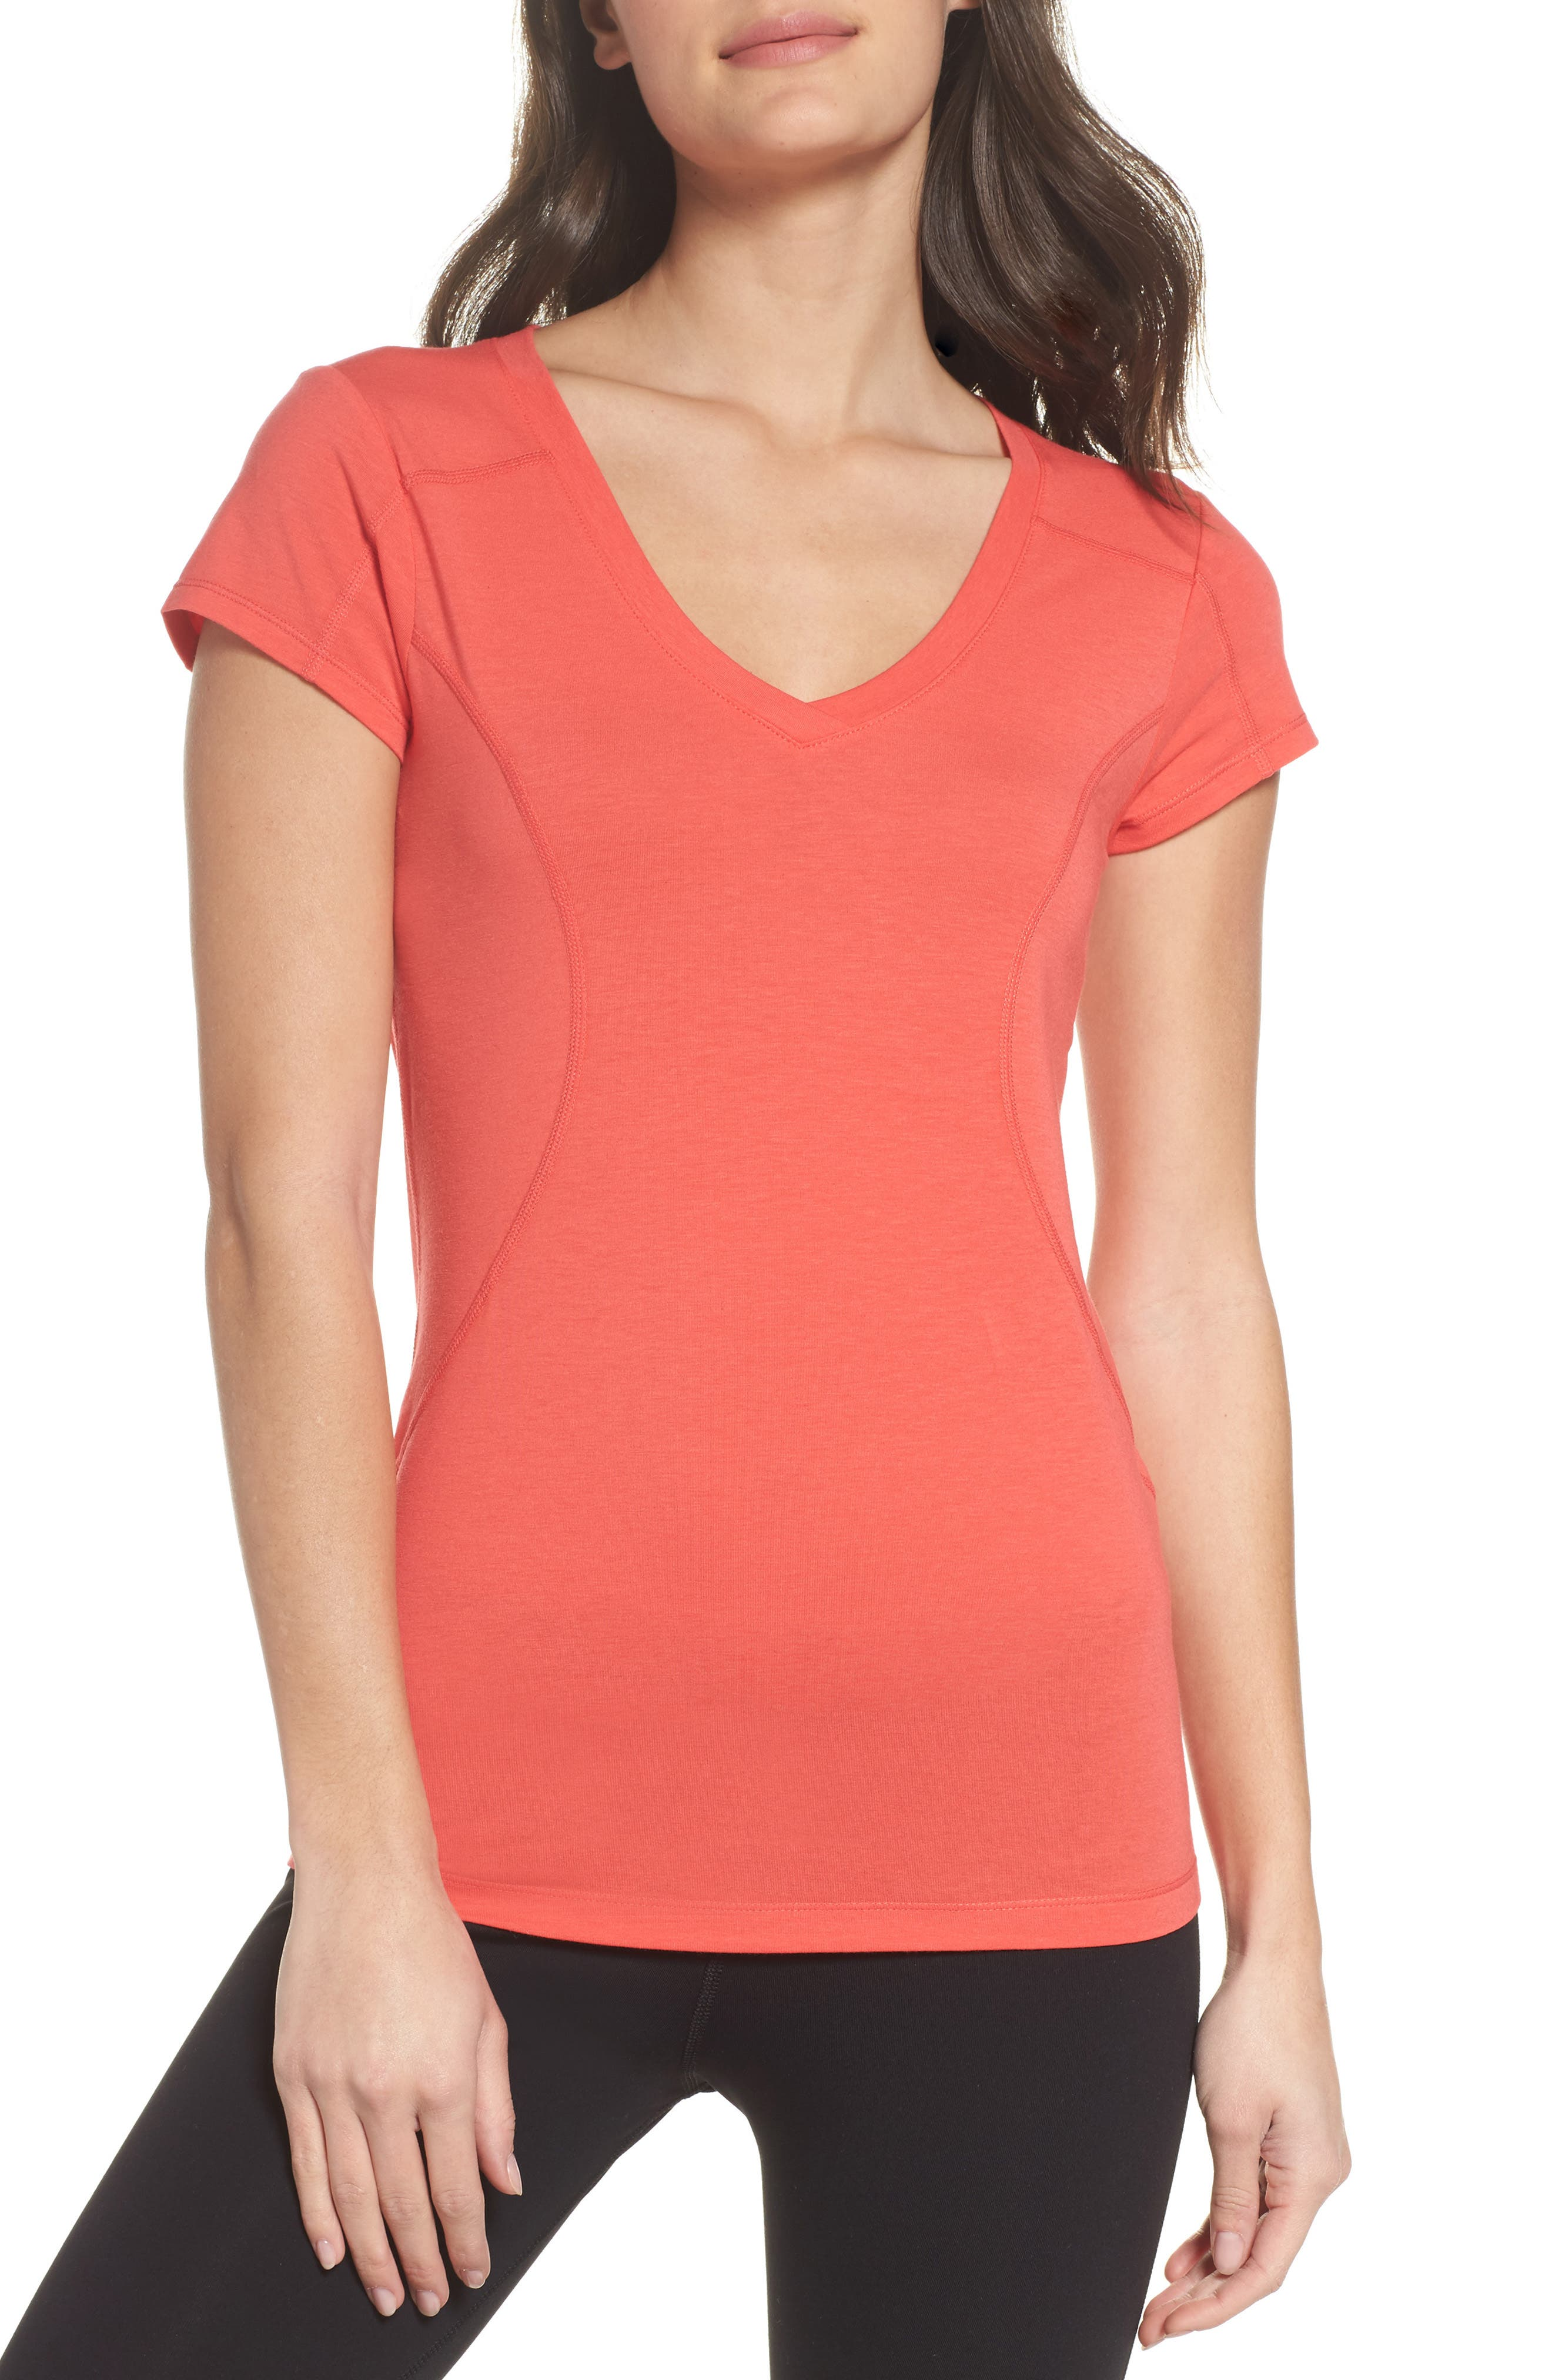 Z Tee,                         Main,                         color, Red Hibiscus